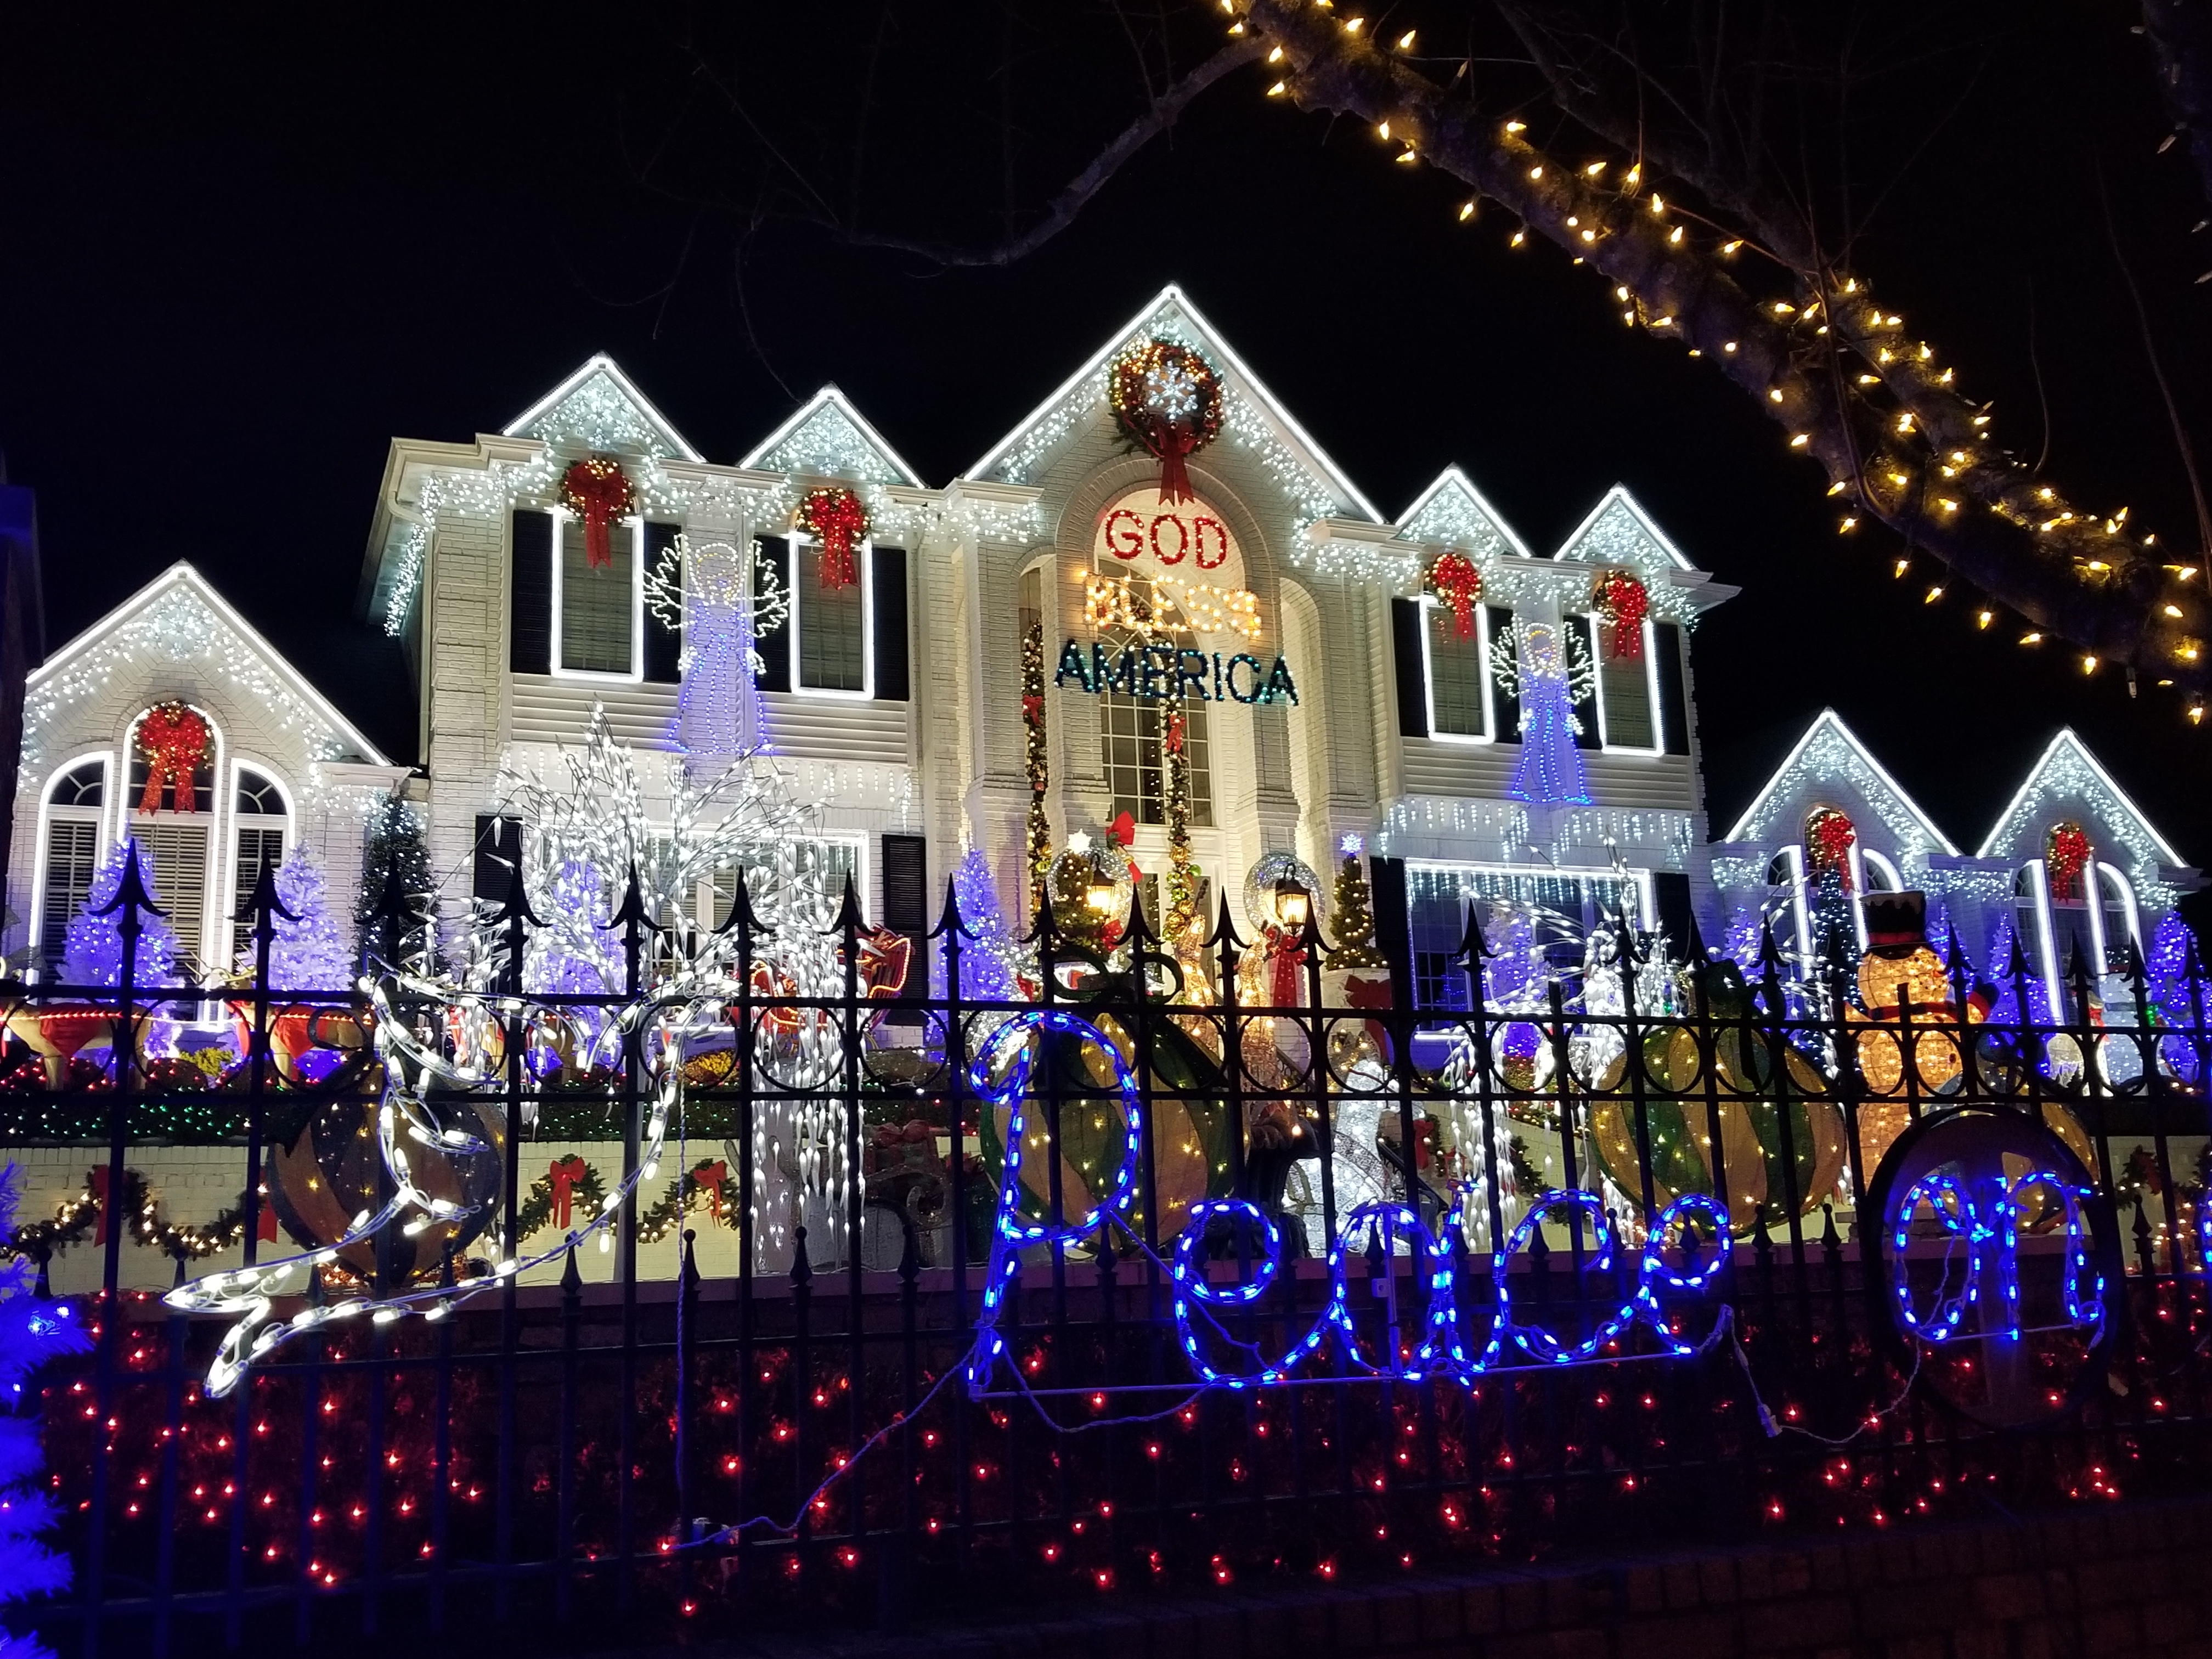 The House With The Lights – Happy Holidays!